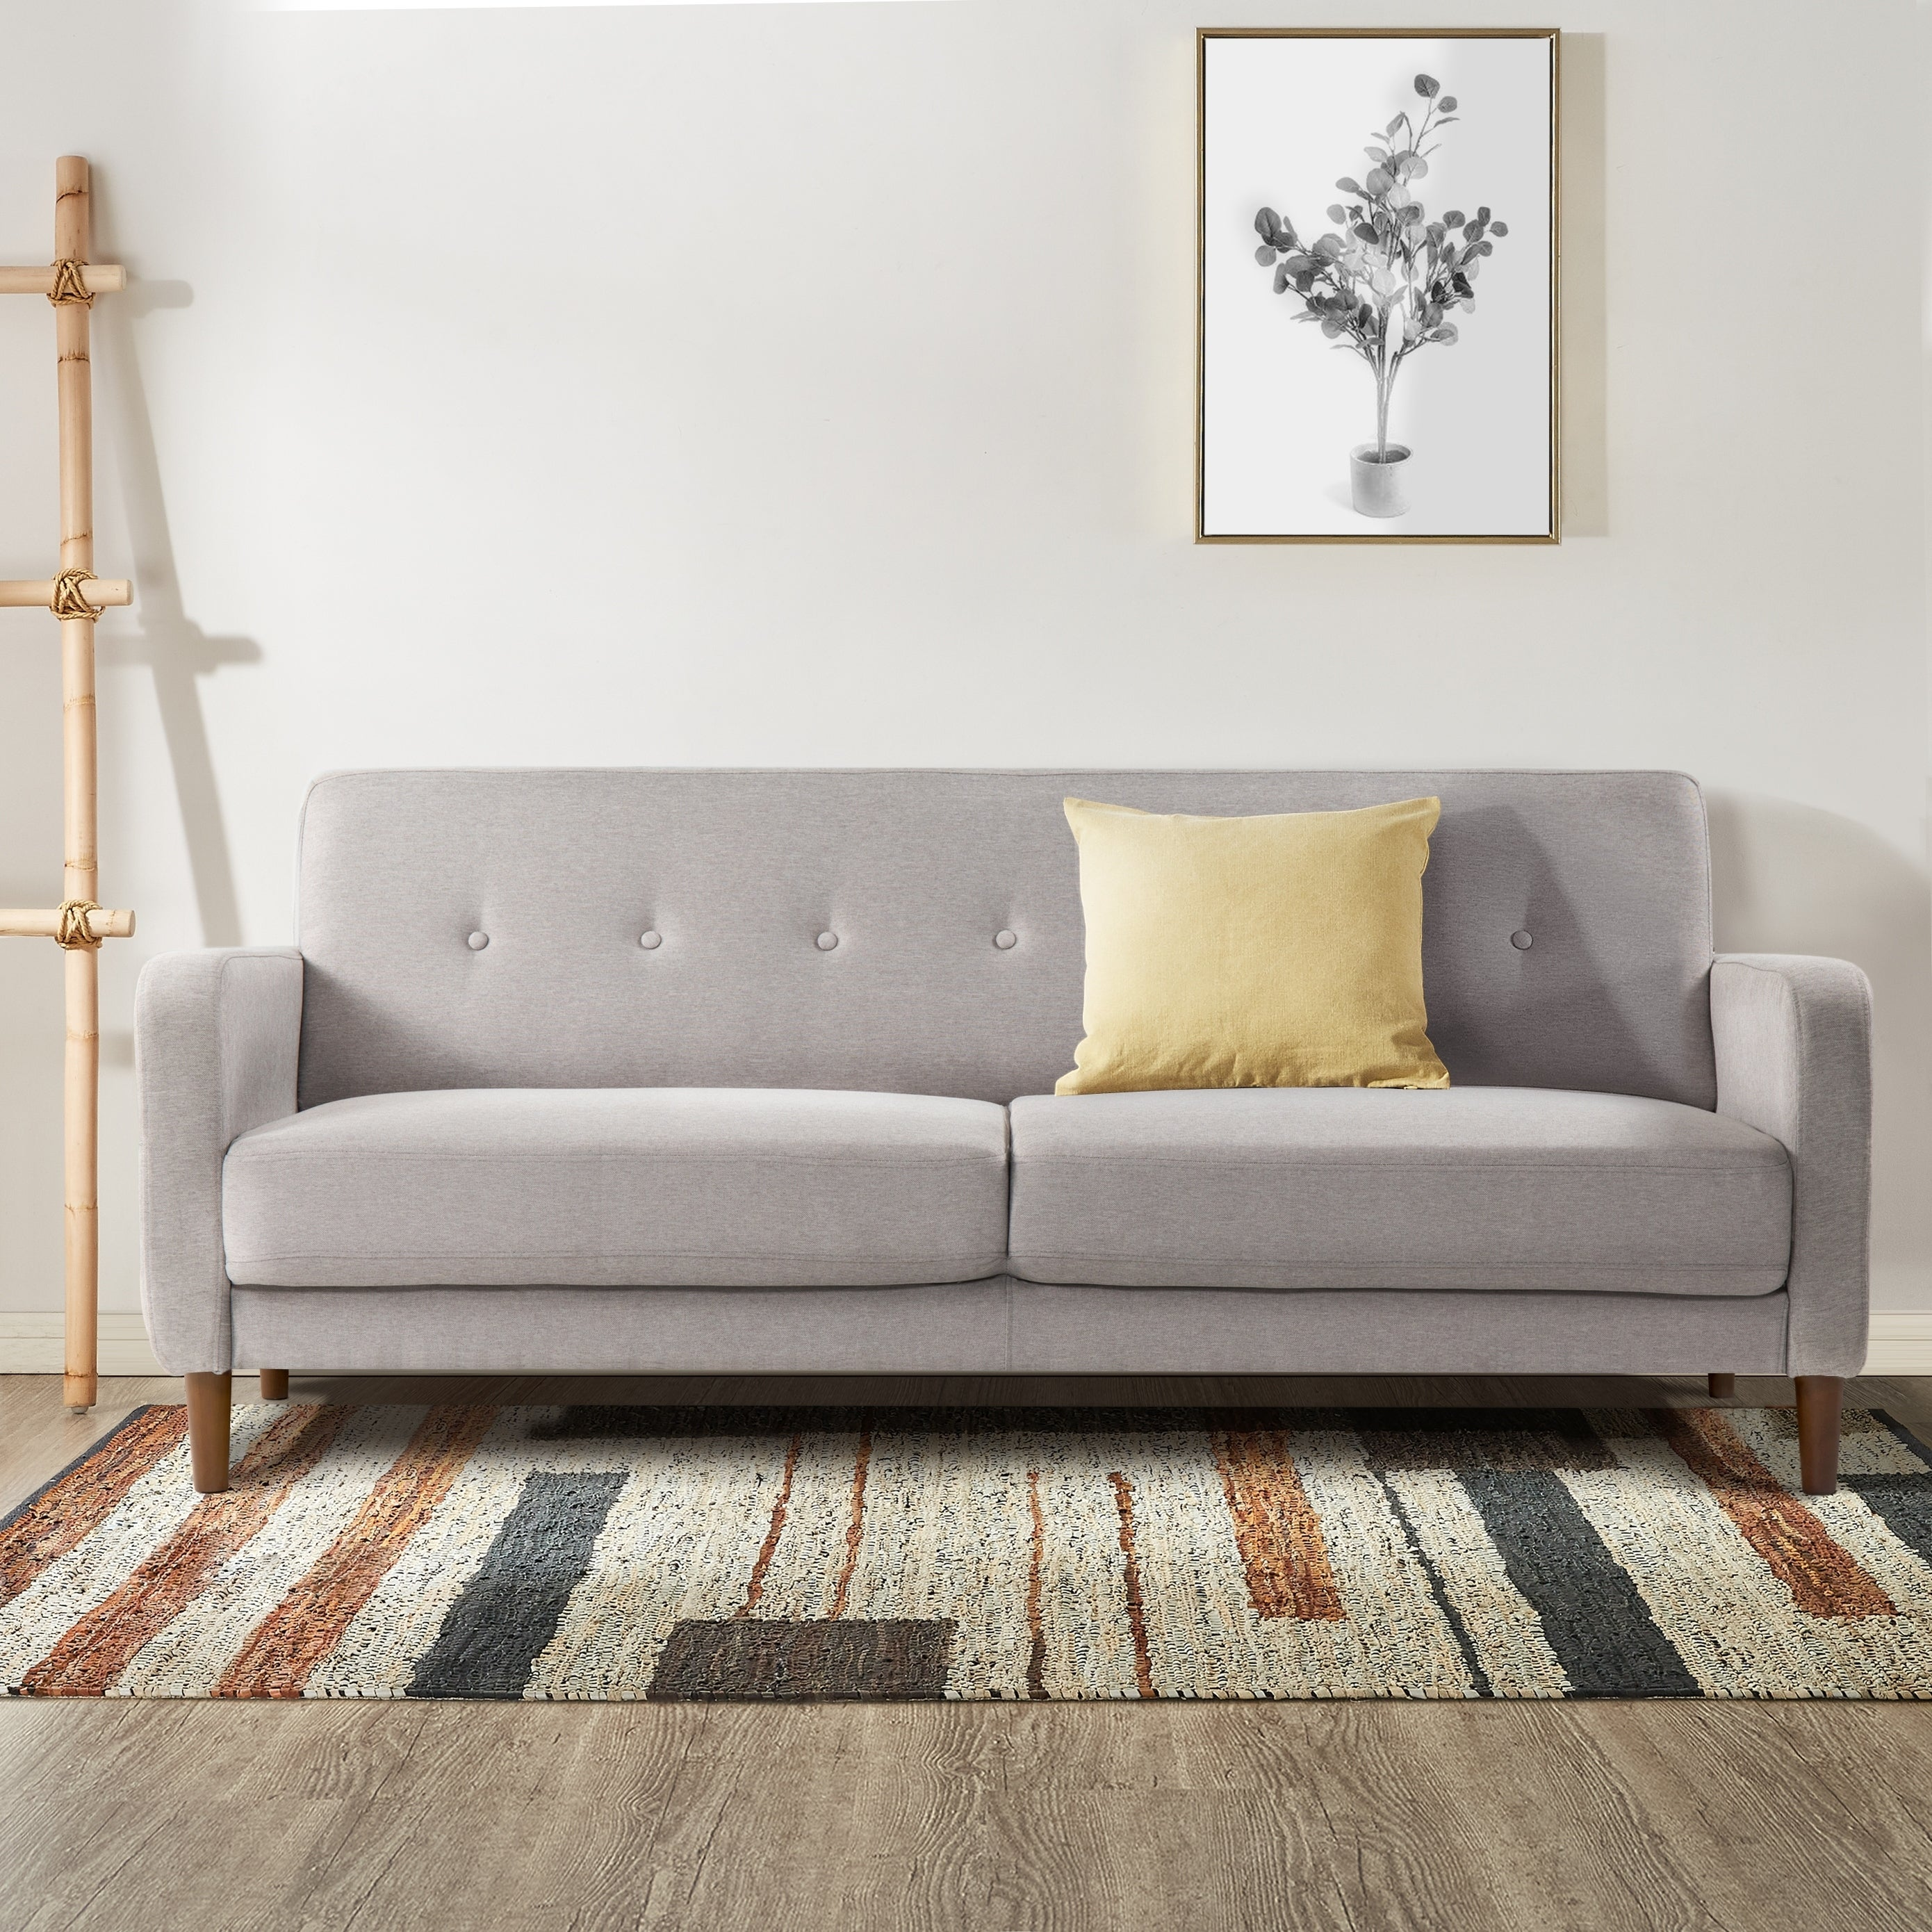 Shop Black Friday Deals On Adair Mid Century Modern Loveseat Sofa Couch With Armrest Pockets Tufted Linen Fabric Light Grey Crown Comfort On Sale Overstock 29179153